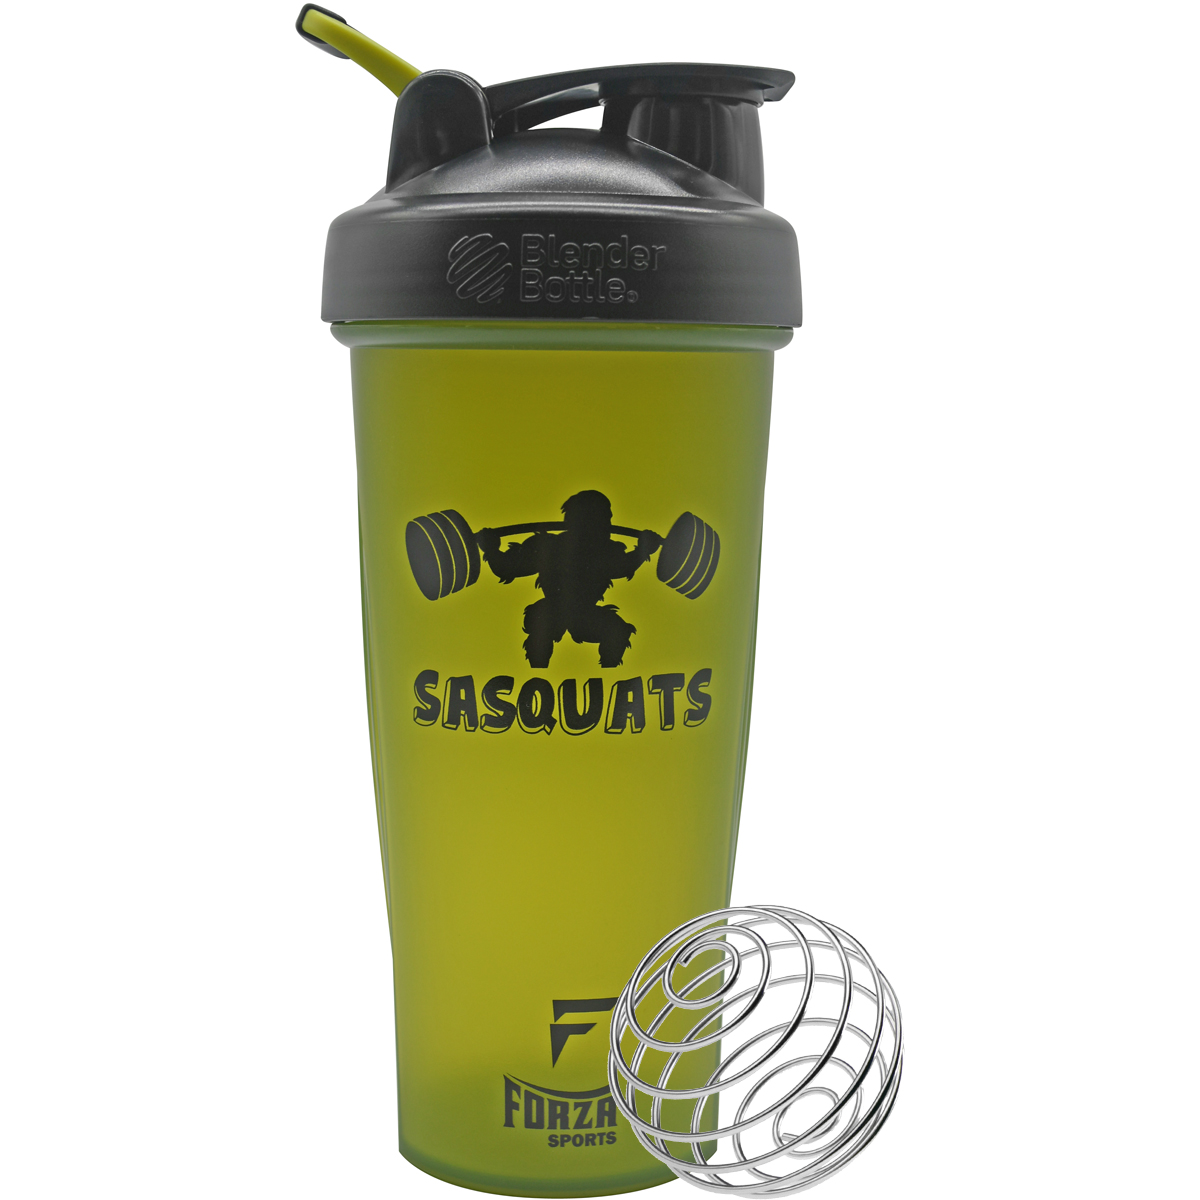 Blender-Bottle-x-Forza-Sports-Classic-28-oz-Shaker-Mixer-Cup-with-Loop-Top thumbnail 45